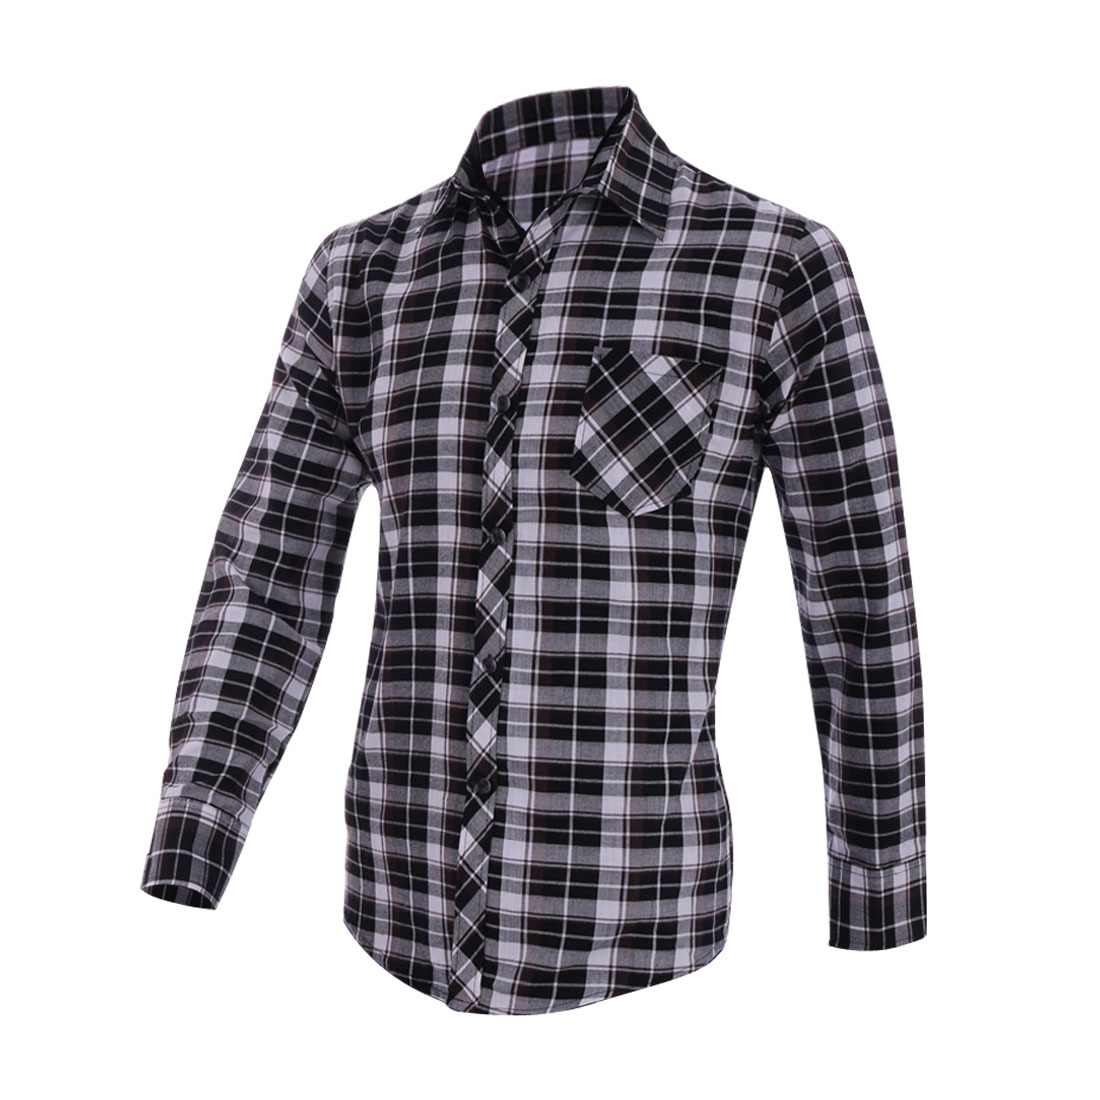 Black Point Collar Single Breasted Patch Pocket Slim Fit Shirt Man M